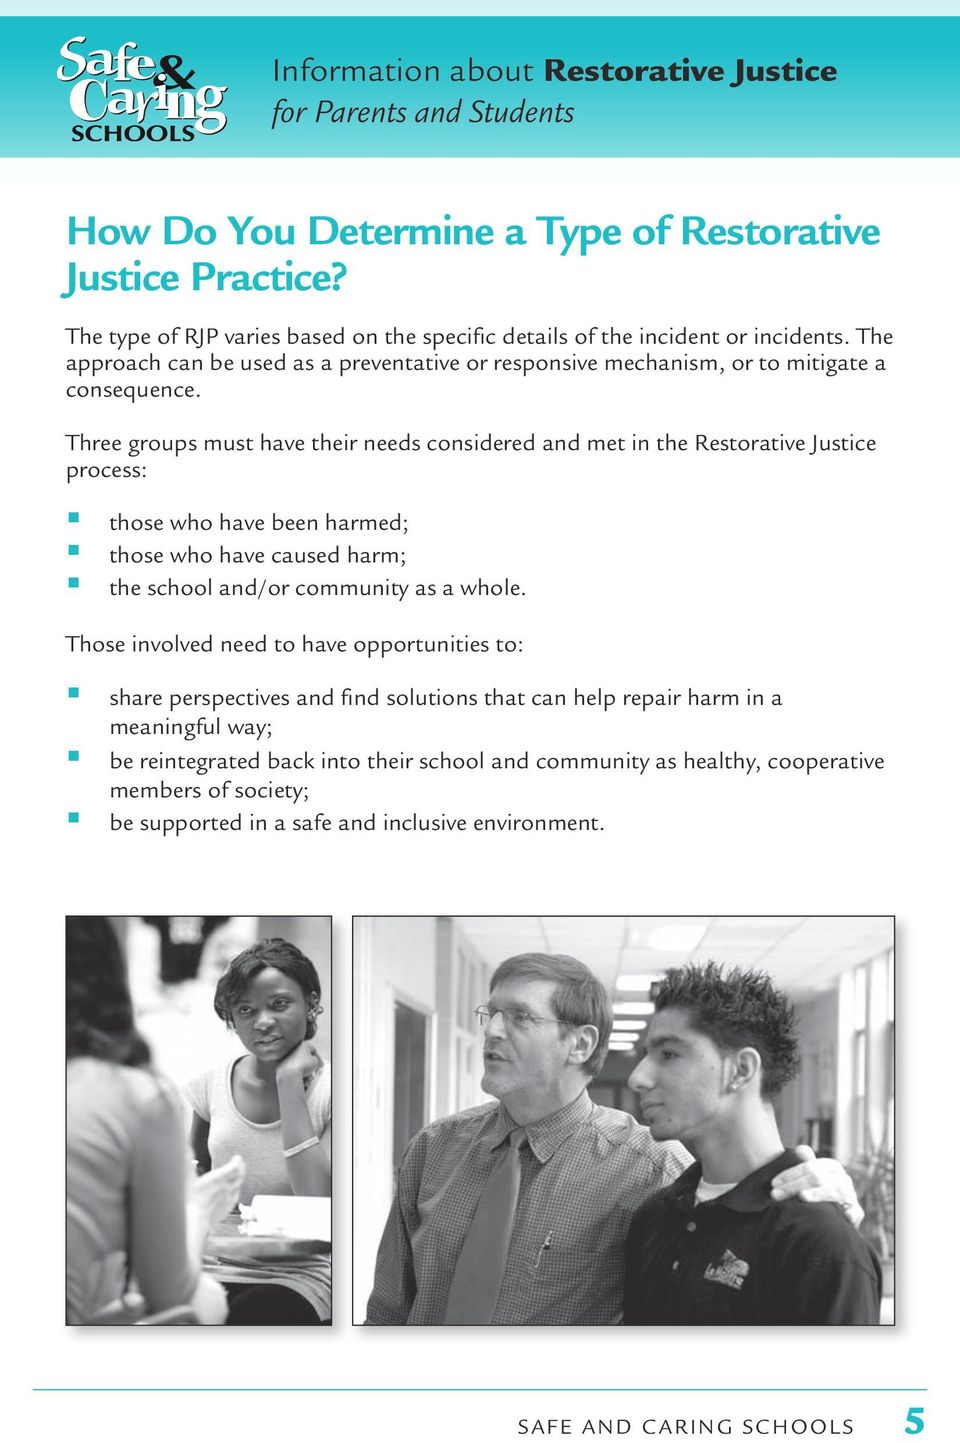 Three groups must have their needs considered and met in the Restorative Justice process: those who have been harmed; those who have caused harm; the school and/or community as a whole.